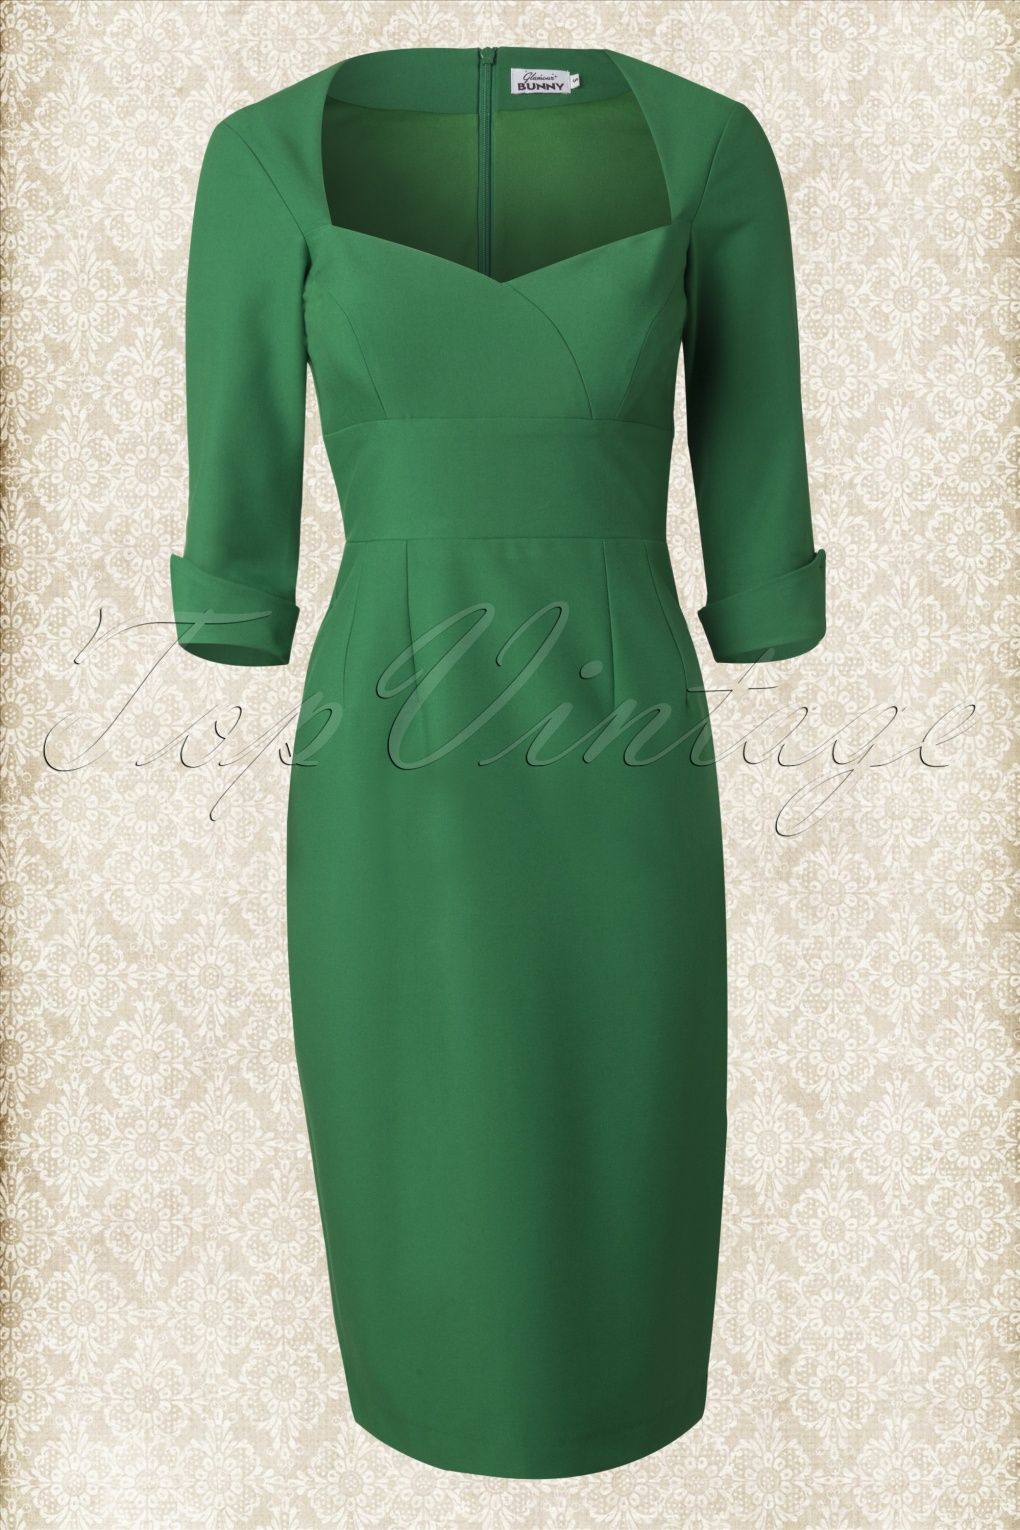 50s Adele Dress in Green - Glamour Bunny